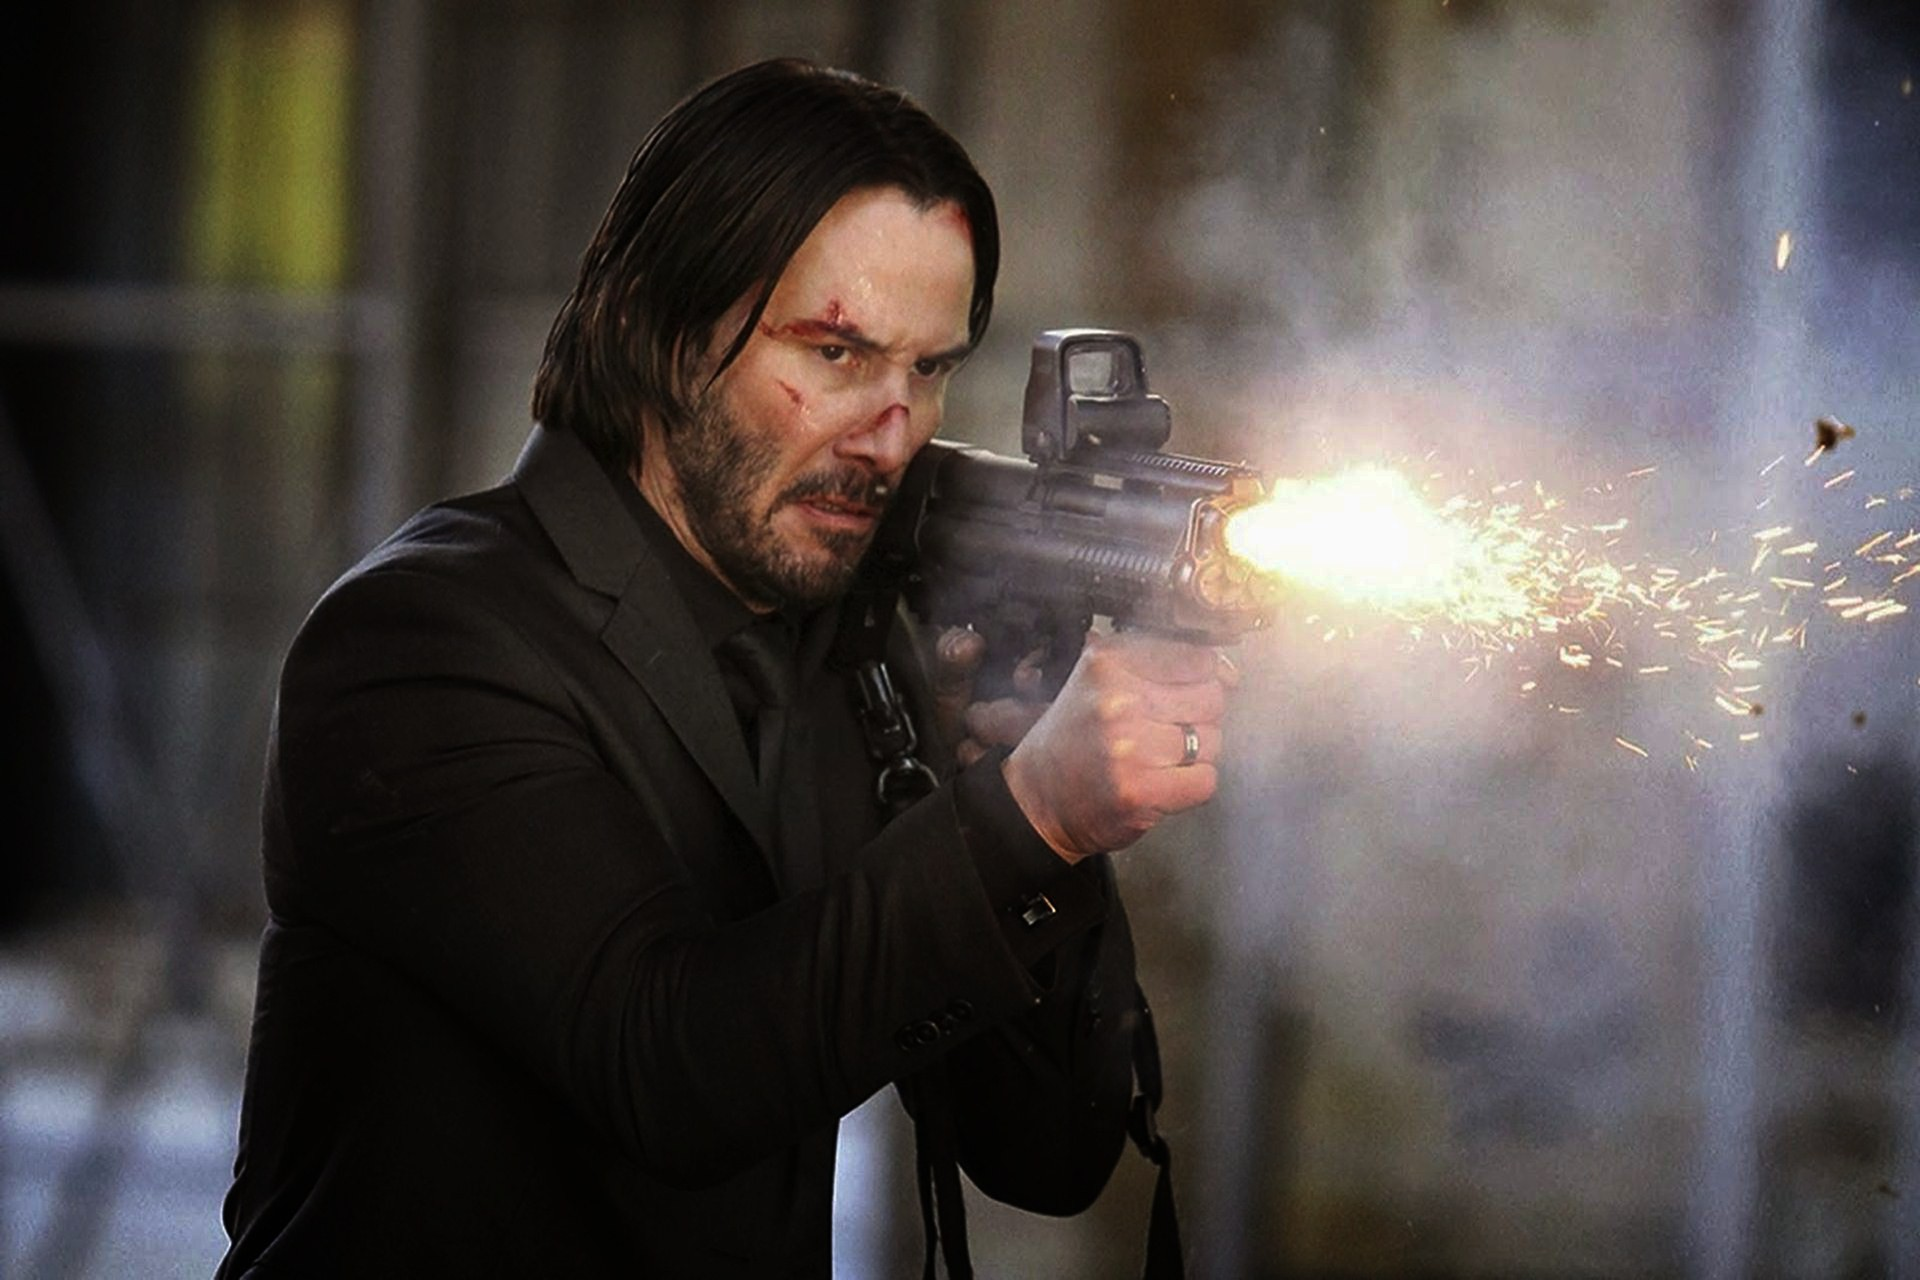 John Wick TV Series The Continental Is a Go at Starz | Collider